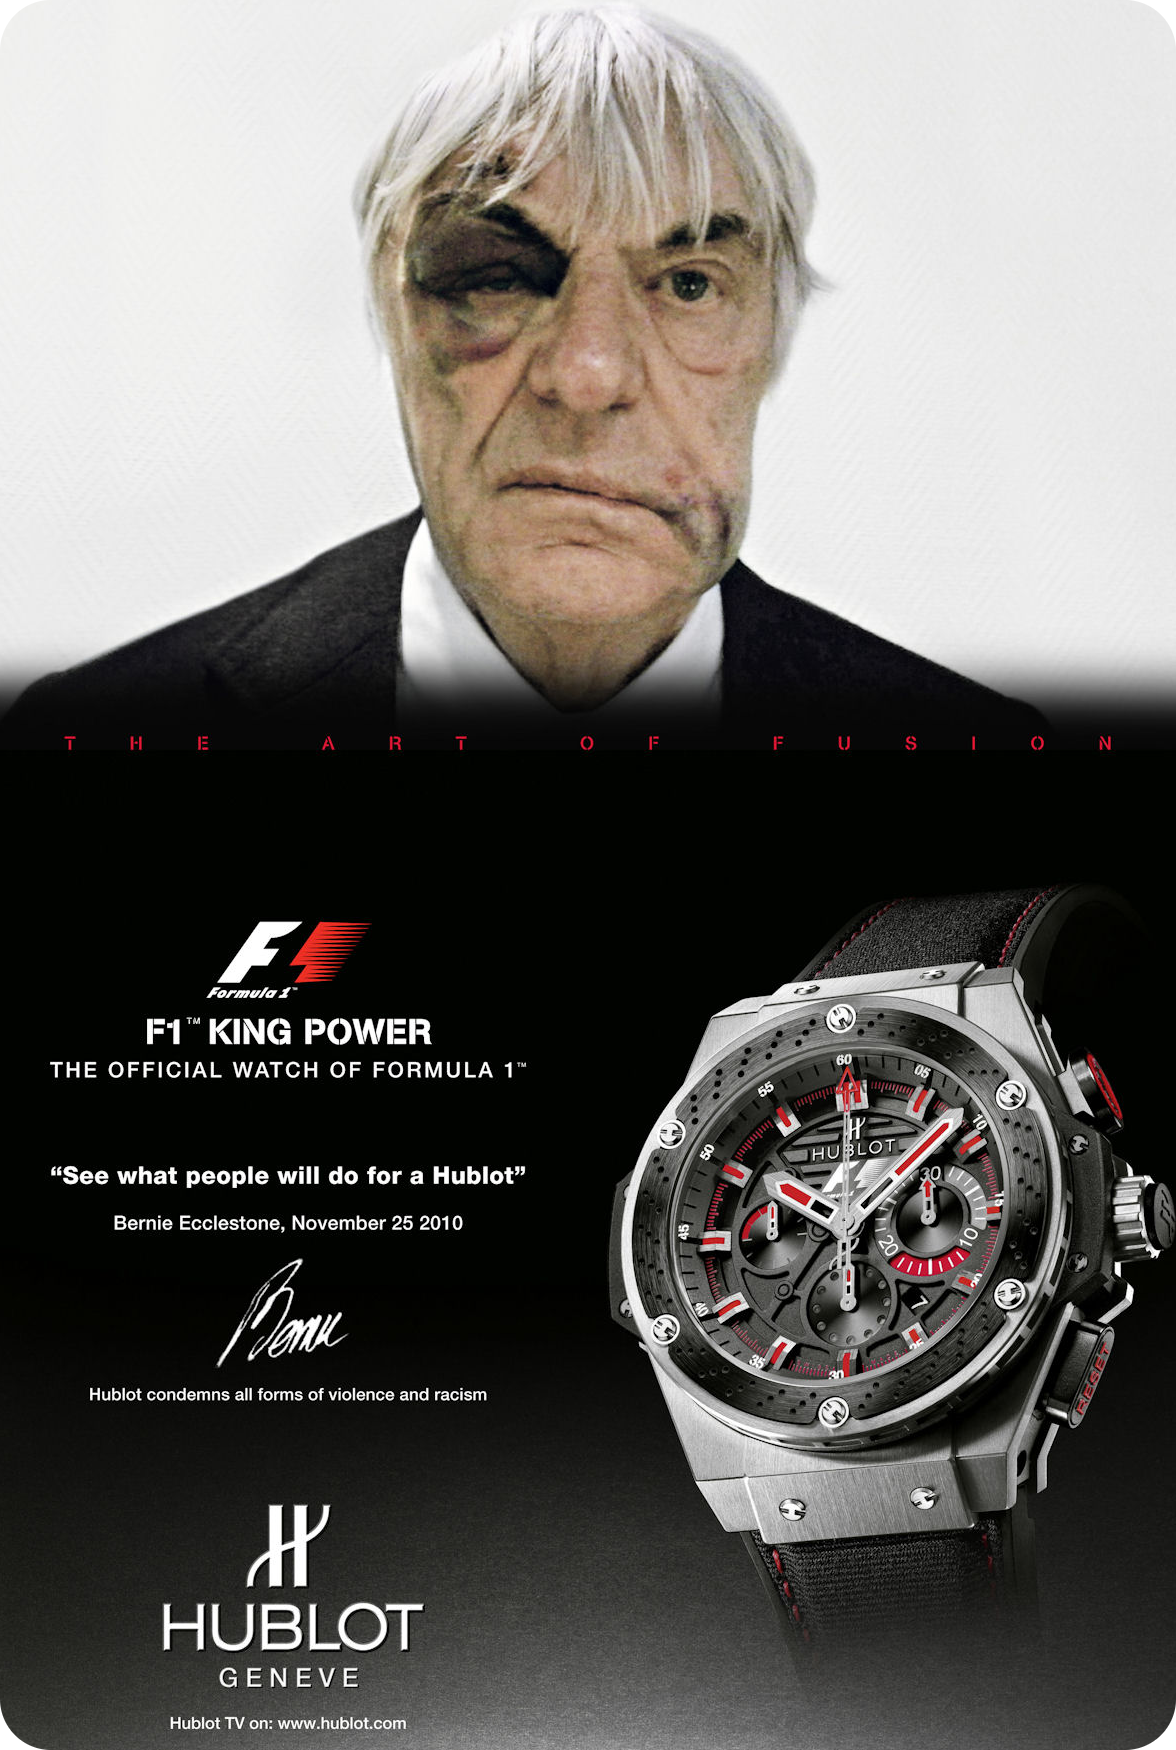 The 2010 advert featuring Bernie Ecclestone. Photo courtesy of Hublot.